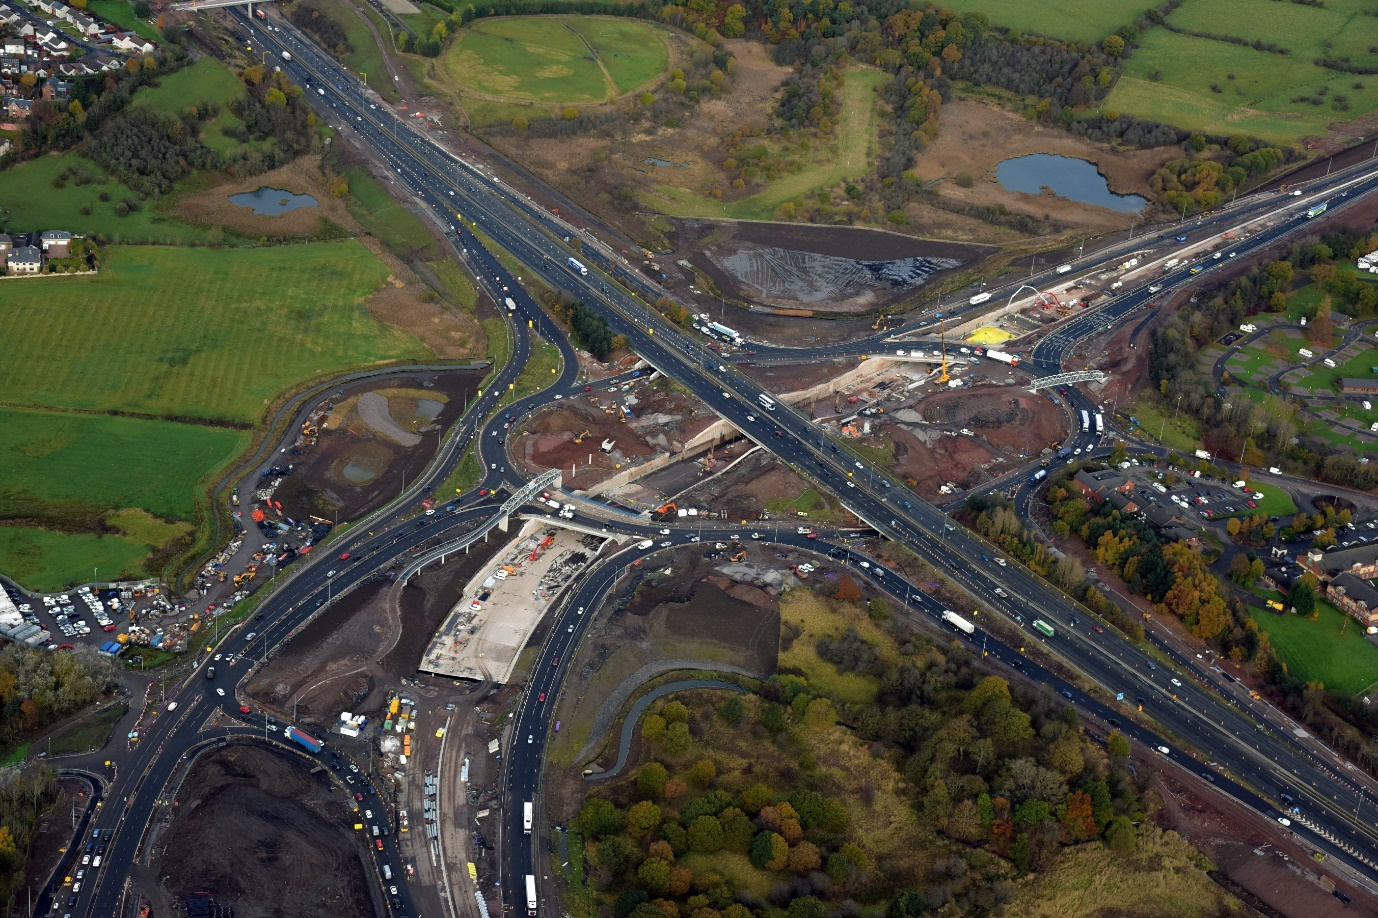 Aerial view of Raith Junction during construction circa Dec 2016, showing completion of piling and emergence of the A725 underpass below the M74